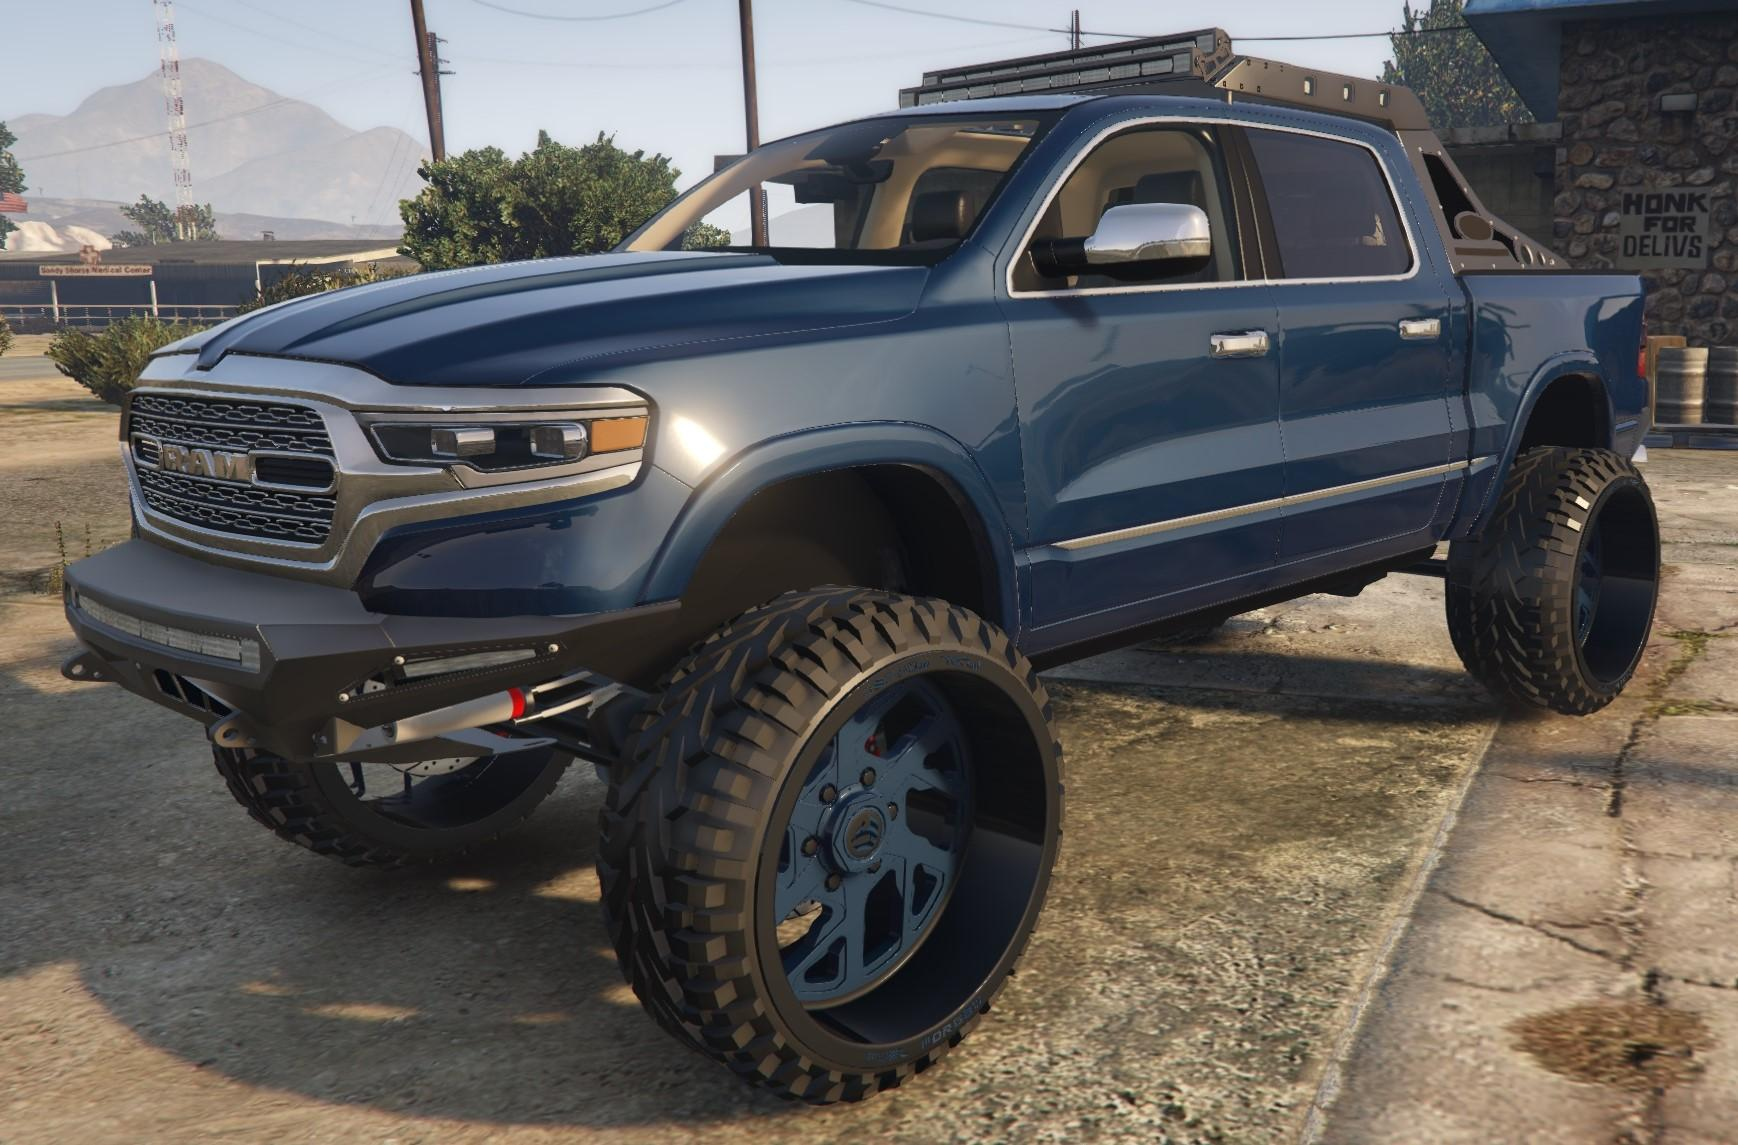 2018 Single Cab Tacoma >> 2019 Dodge Ram Offroad - GTA5-Mods.com